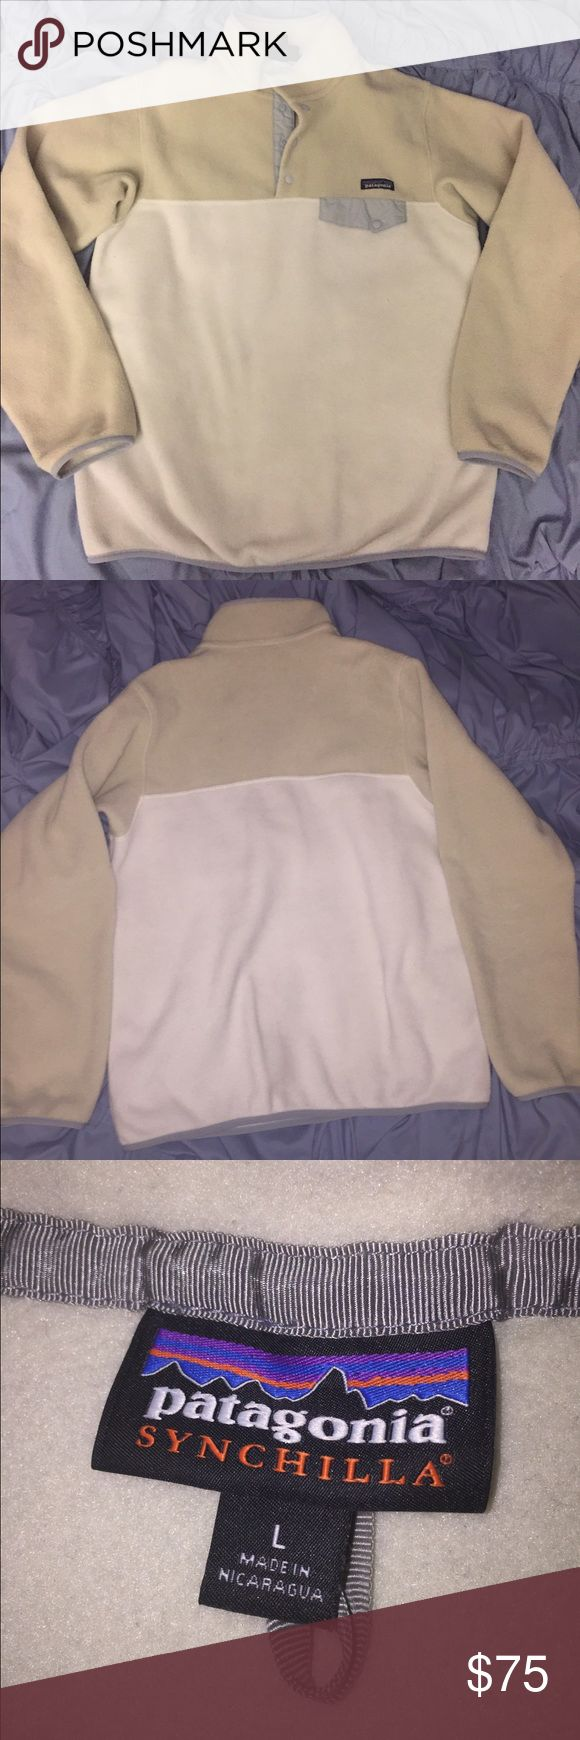 BARELY WORN Patagonia Synchilla Jacket size L Fleece Patagonia Synchilla Jacket size L. I love this pullover it's just too big on me. I probably only wore it 3-4 times. Very warm and cute and matches near everything! Patagonia Jackets & Coats